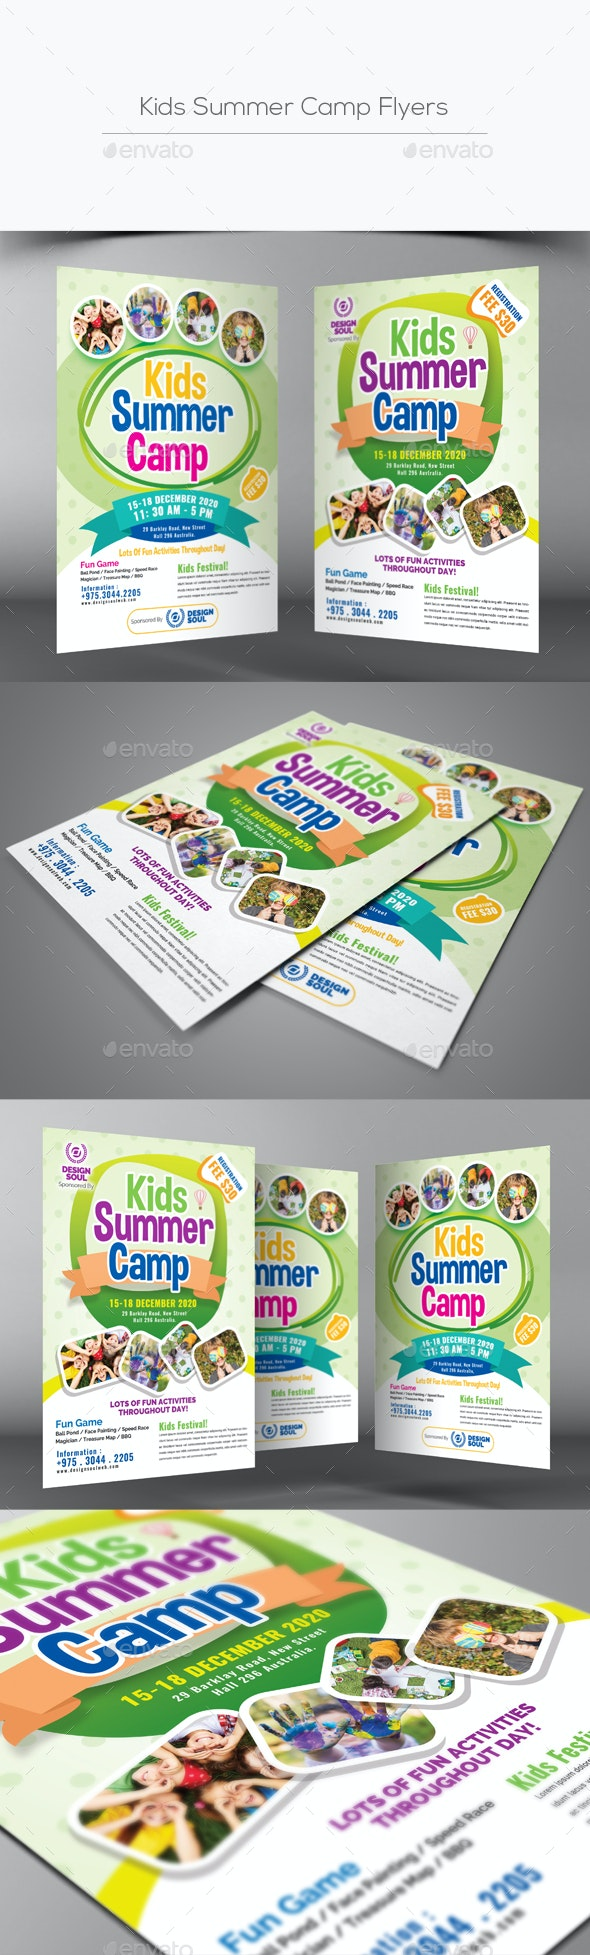 Kids Summer Camp Flyers - Corporate Flyers